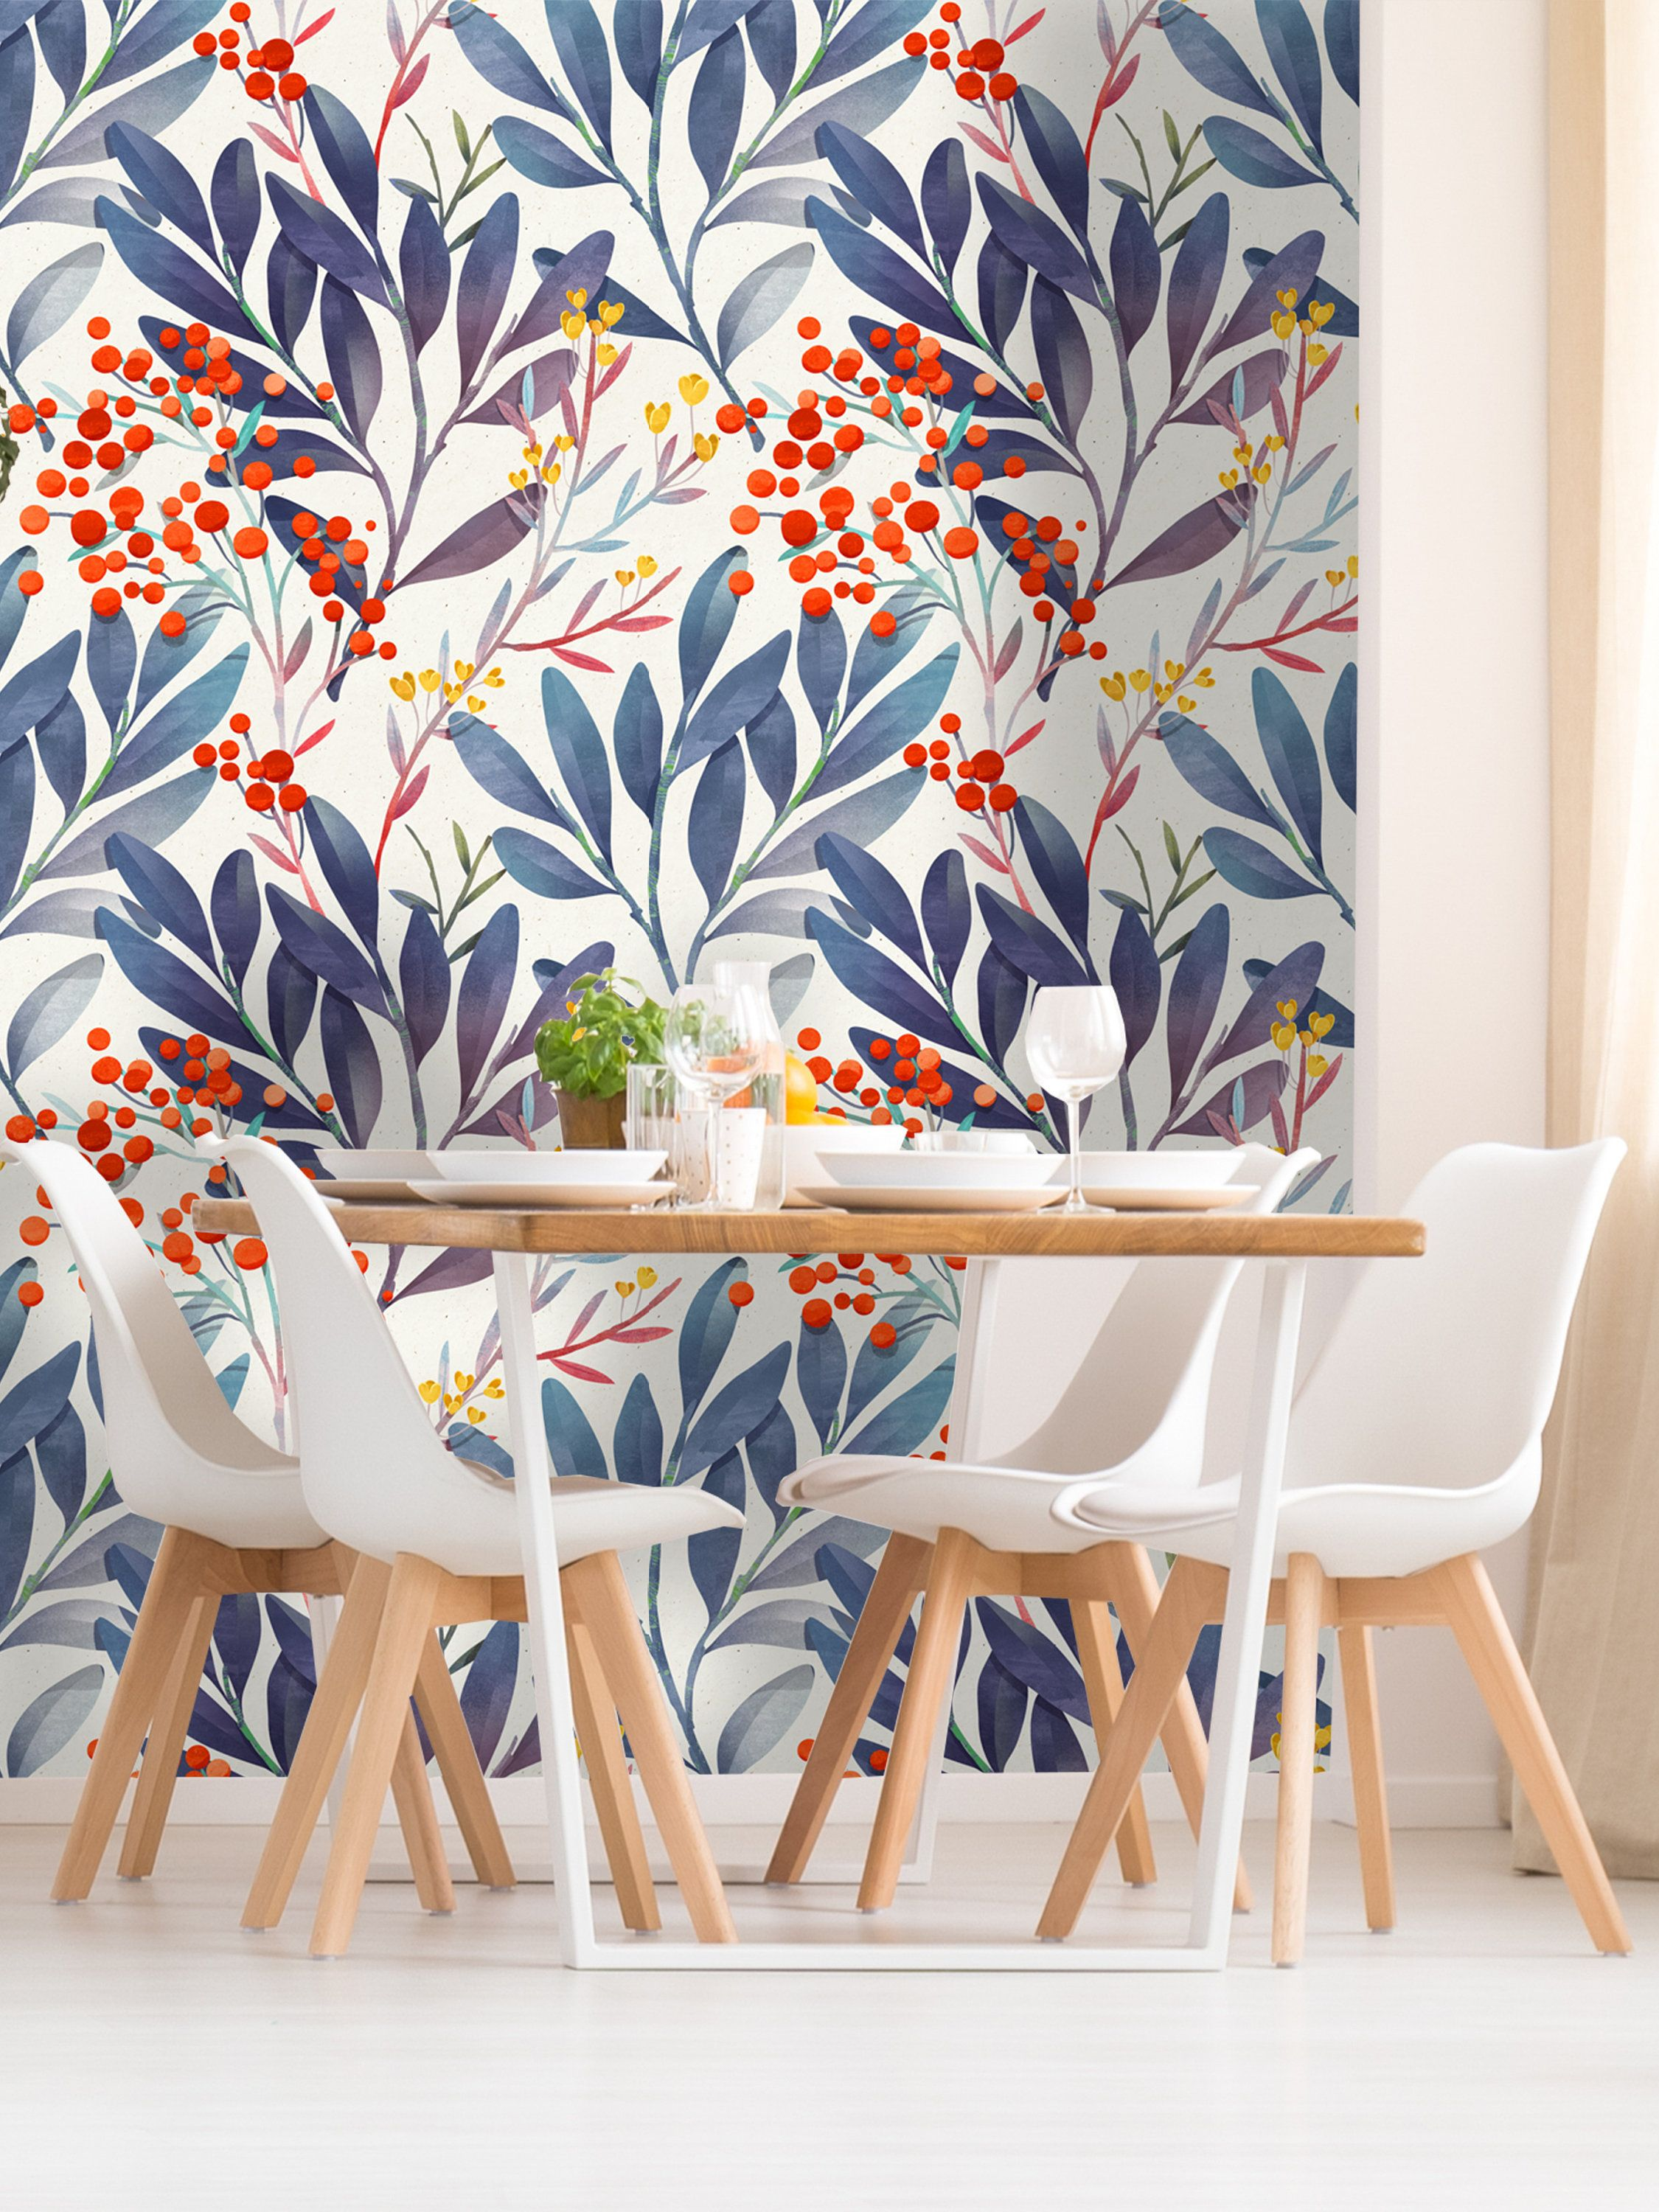 Removable Wallpaper Self Adhesive Wallpaper Wild Berries And Leaves Peel Stick Wallpaper In 2019 Home Decor Self Adhesive Wallpaper Peel Stick Wallpaper